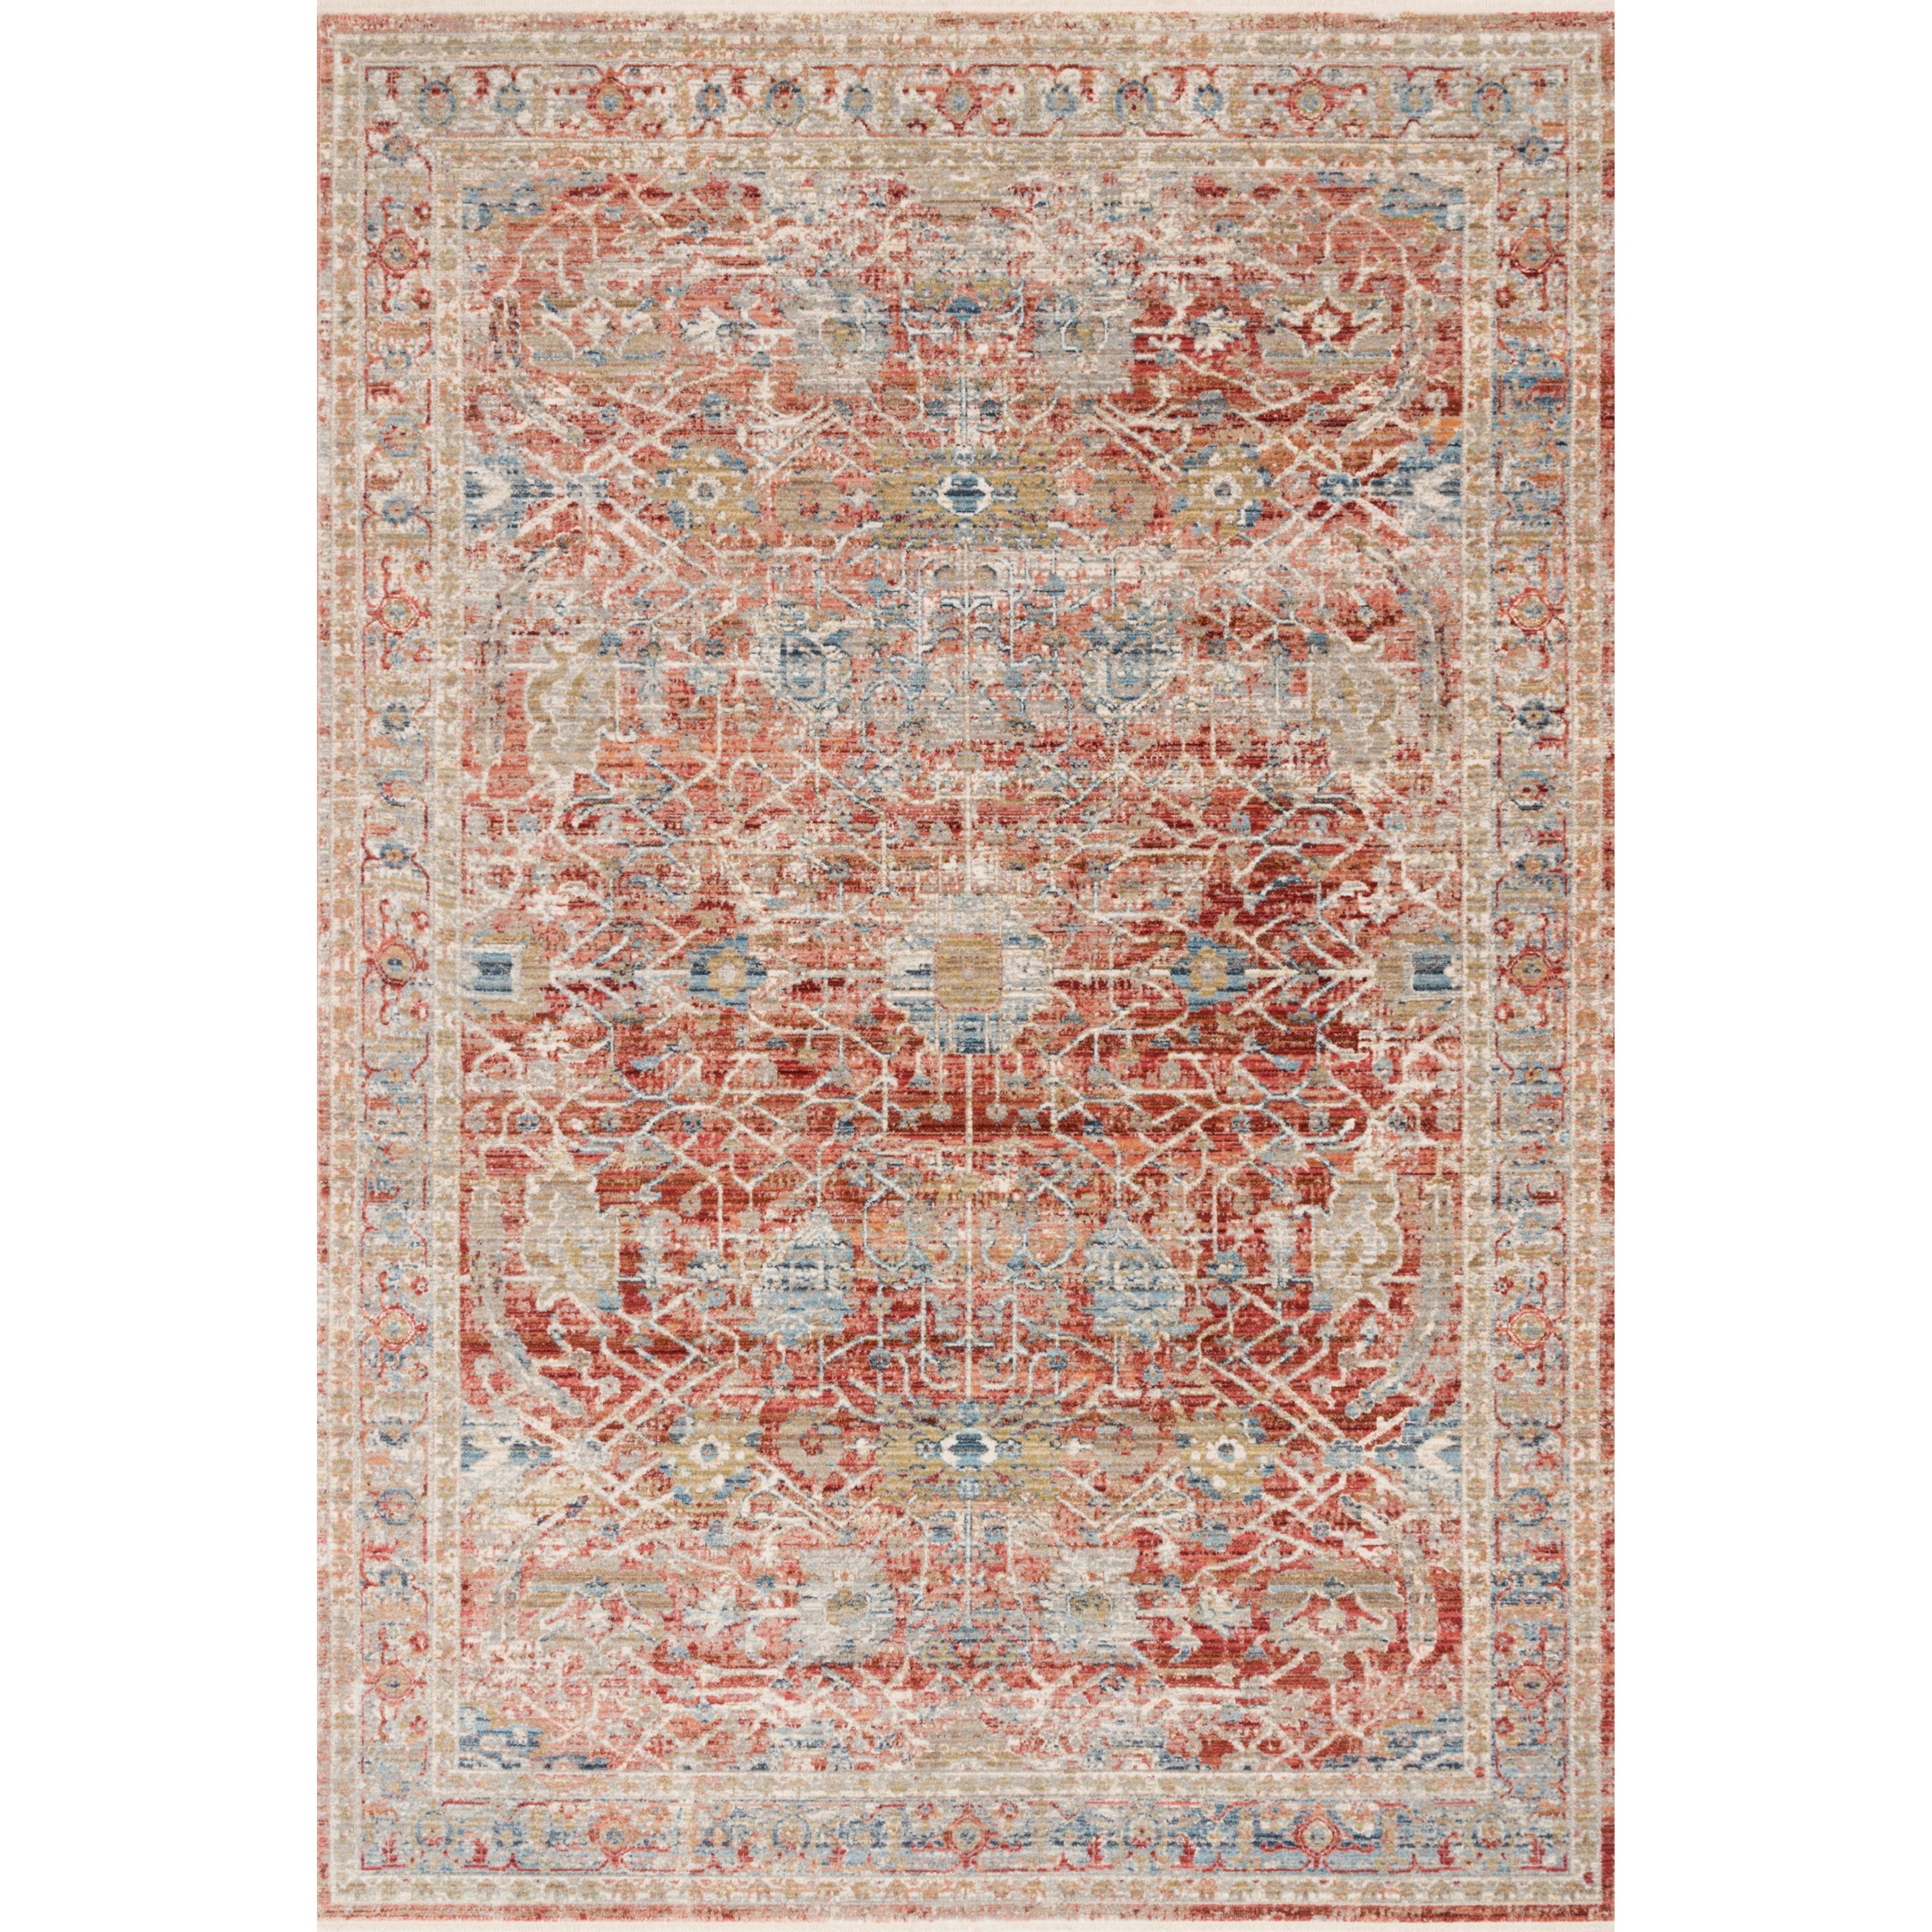 """Claire 3'7"""" x 5'1"""" Red / Ivory Rug by Loloi Rugs at Virginia Furniture Market"""